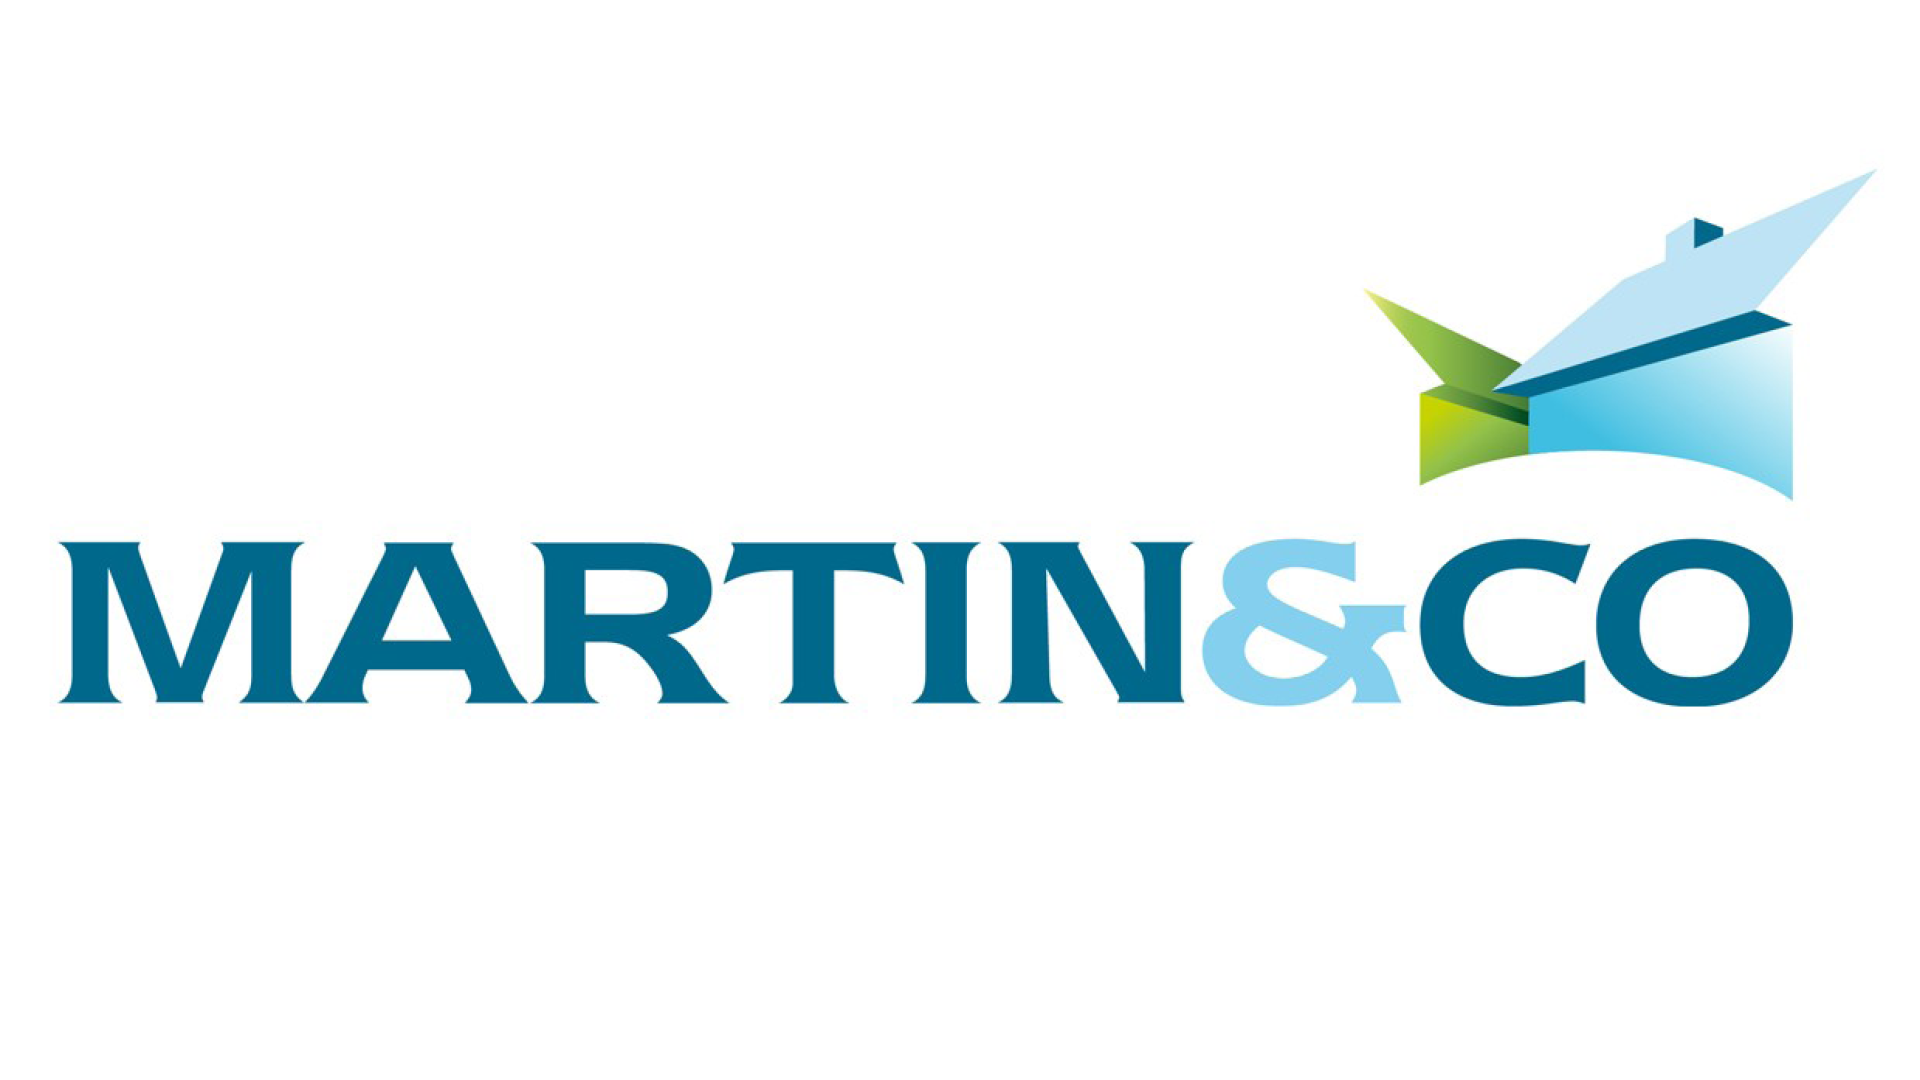 Martin & Co has come flying out of the starting blocks after the Covid-19 lockdown, with three branches of the national sales and lettings agency completing major acquisitions.